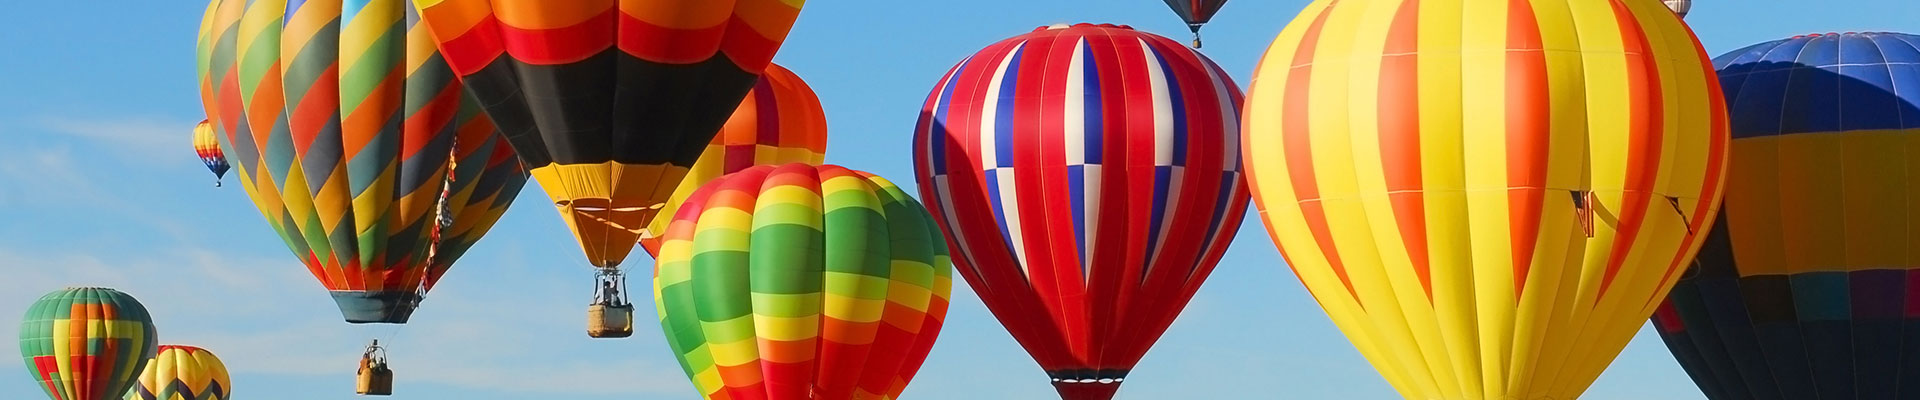 Fantasy RV Tours: 7 Day Albuquerque Balloon Fiesta (07UABP-100120)